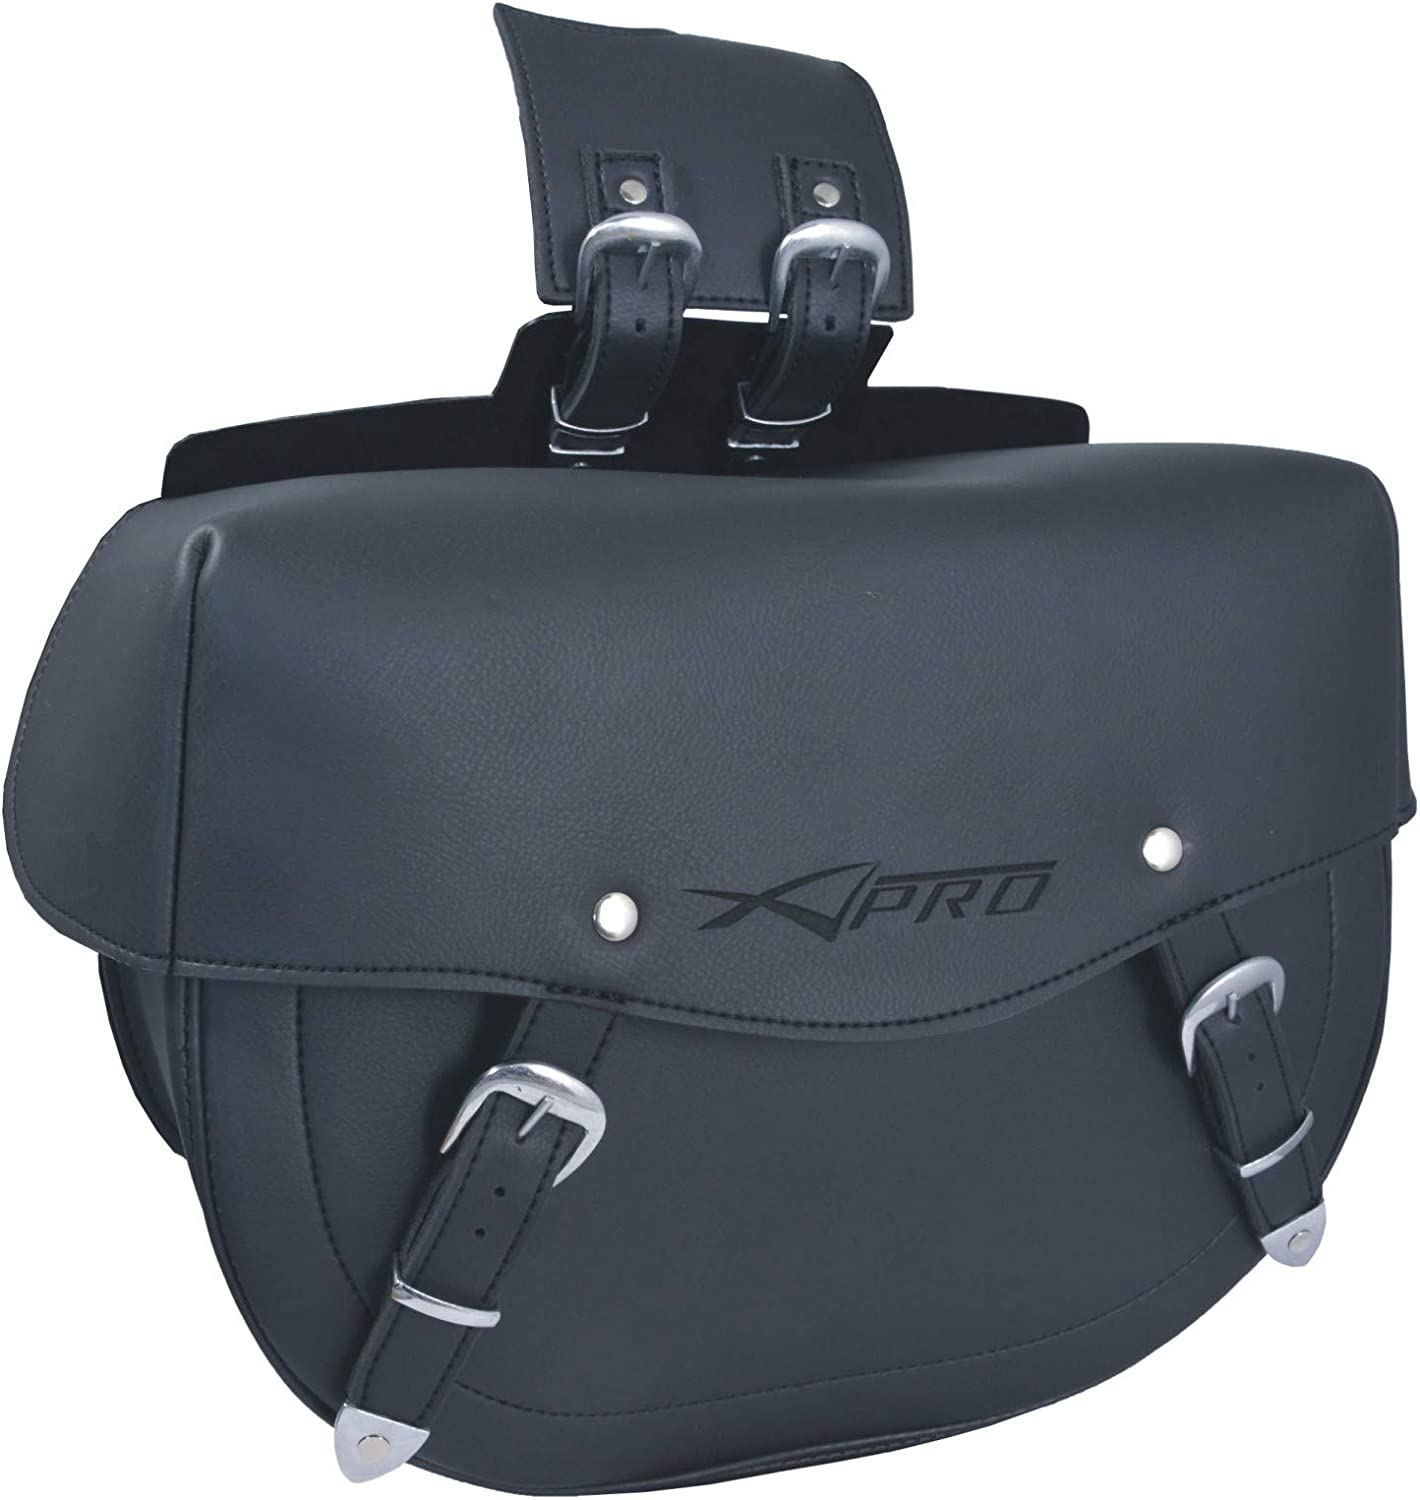 Side Bag Luggage sold out Saddle Bags Max 56% OFF Black Large Cruiser Motorcycle